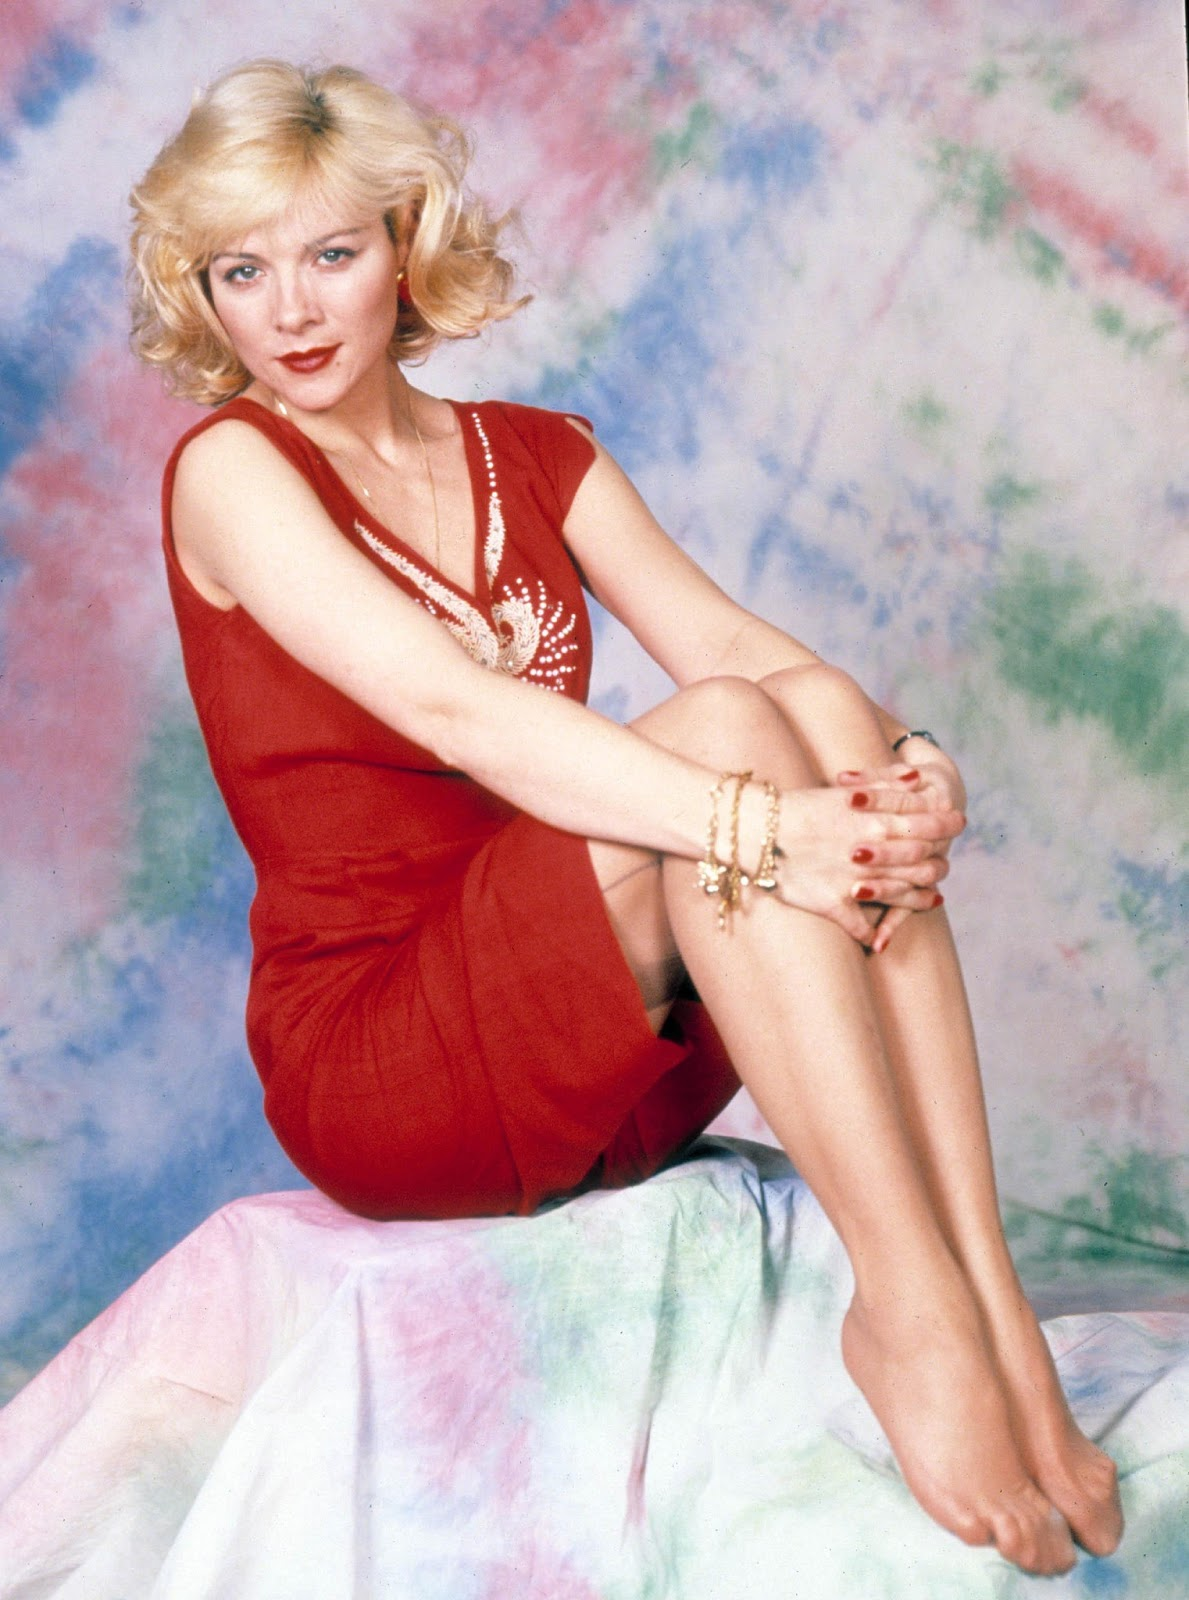 Chatter Busy: Kim Cattrall Quotes Kim Cattrall Now